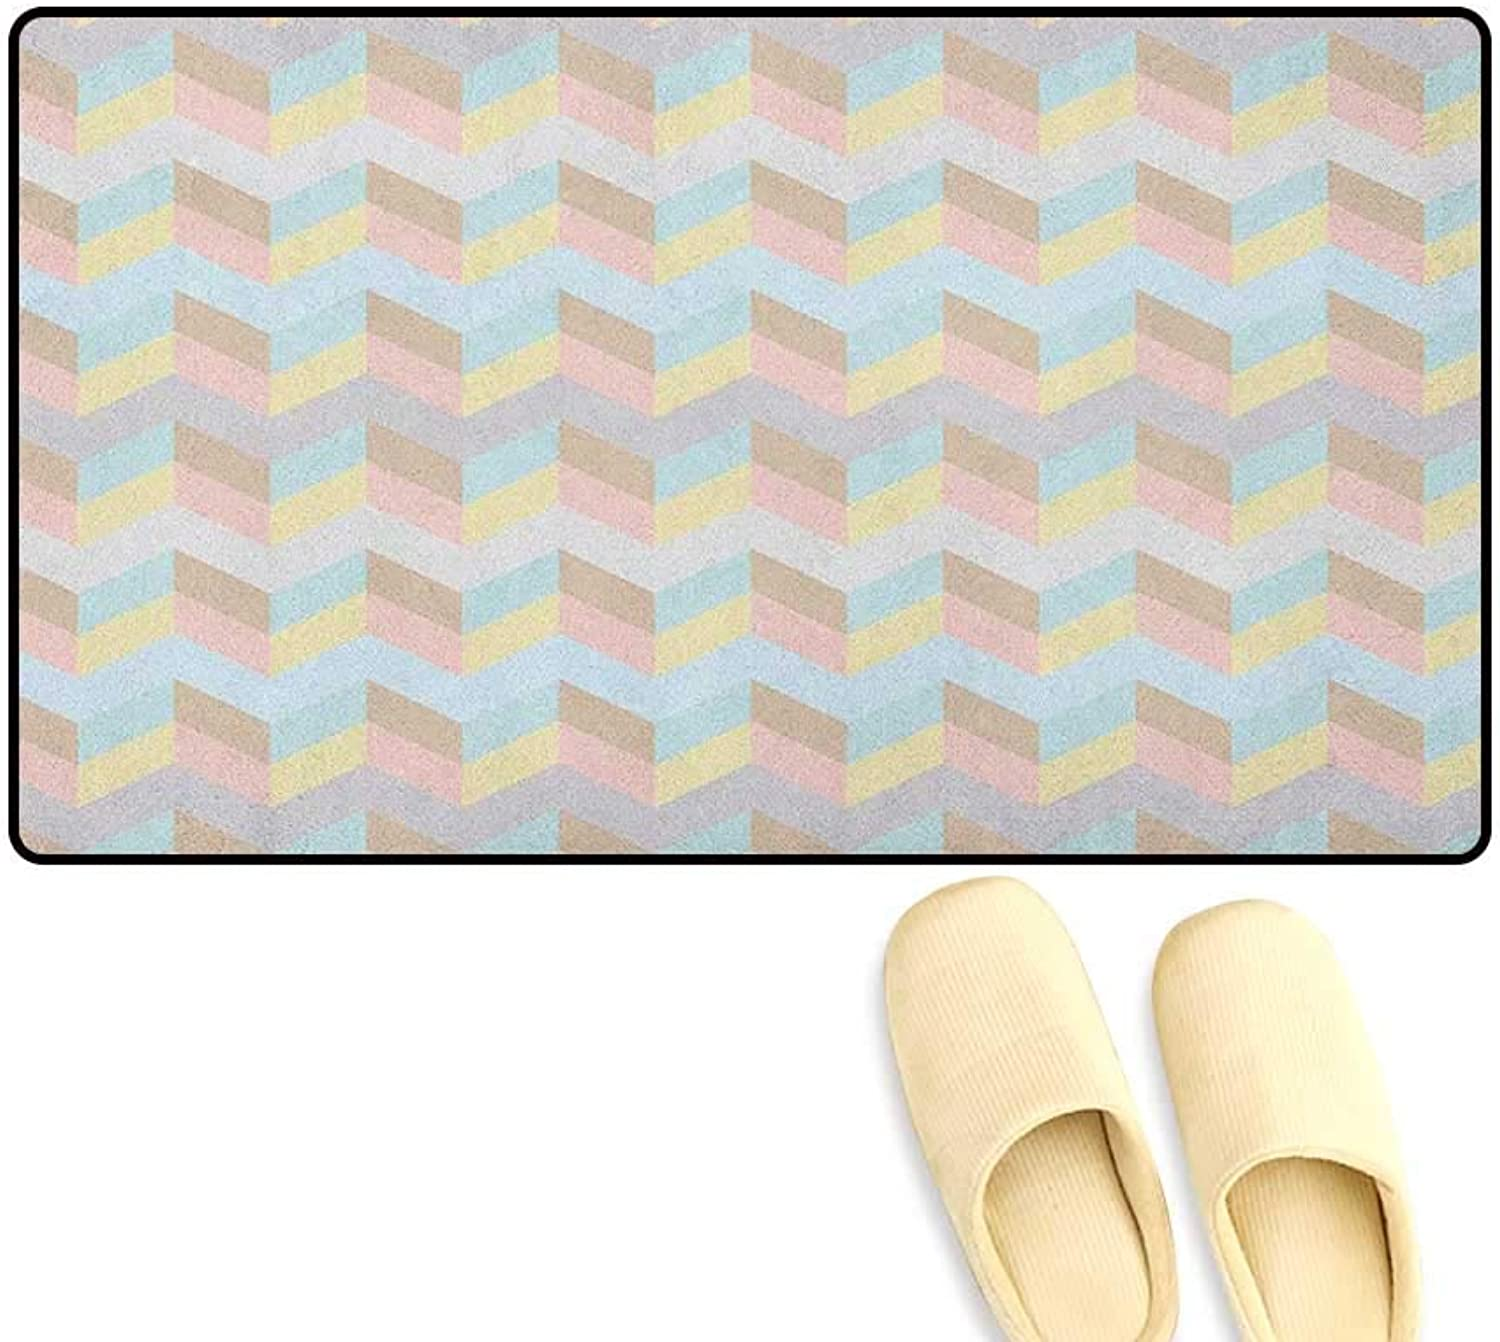 Pastel Door Mats for Inside Old Fashioned Chevron Pattern Horizontal Zigzag Lines Geometric Abstract Soft colors Size 24 x36  Multicolor